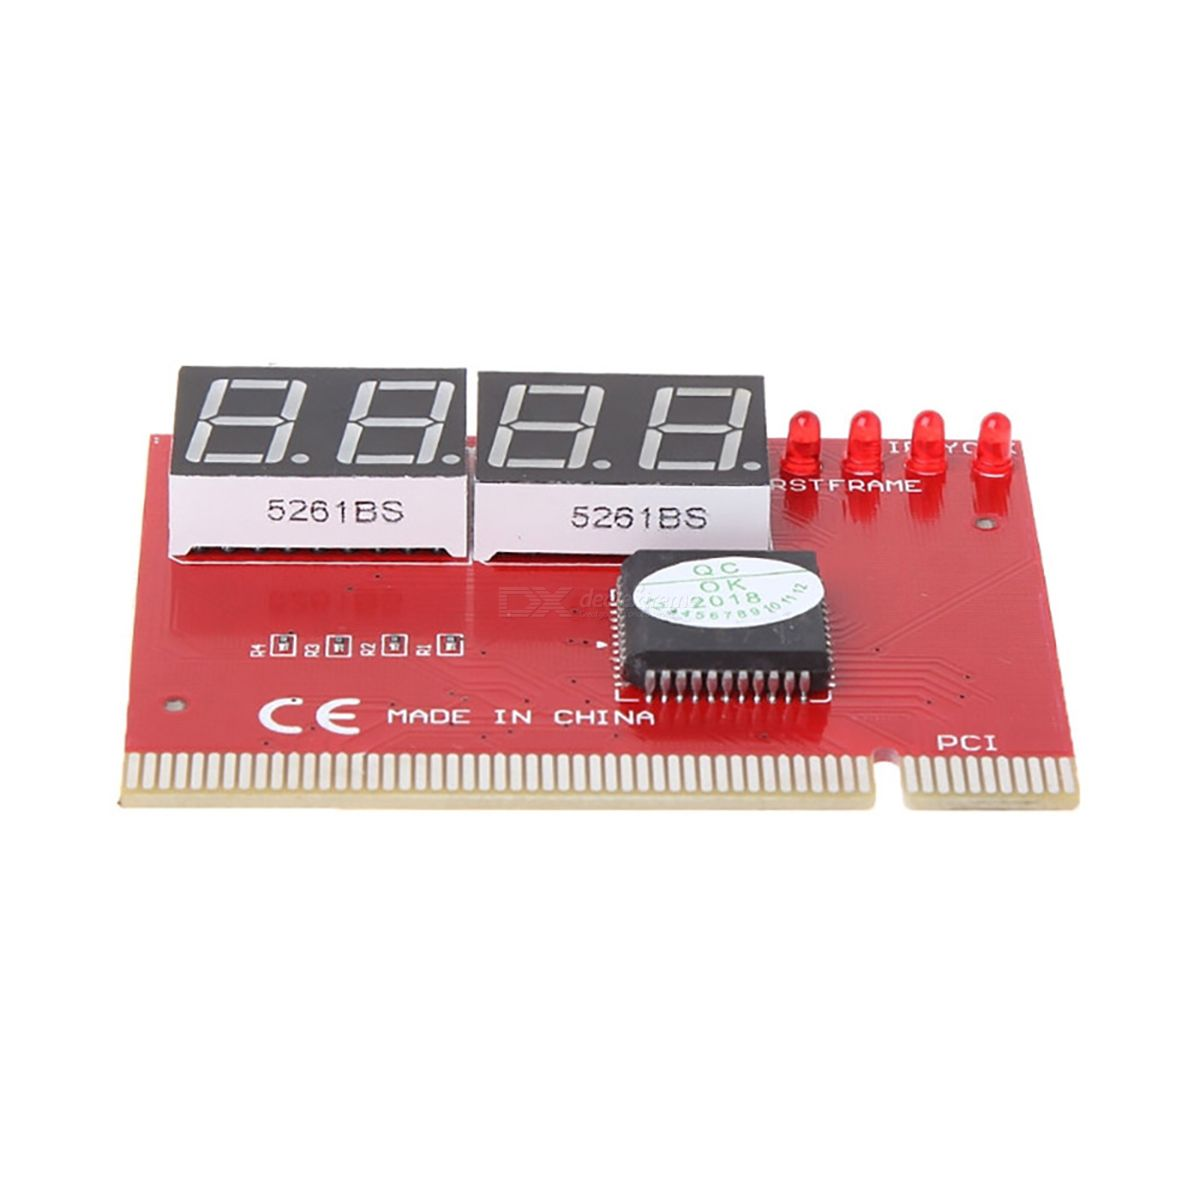 Kitbon 4-Digit PC Mainboard PCI POST Diagnostic Analyzer Test Card